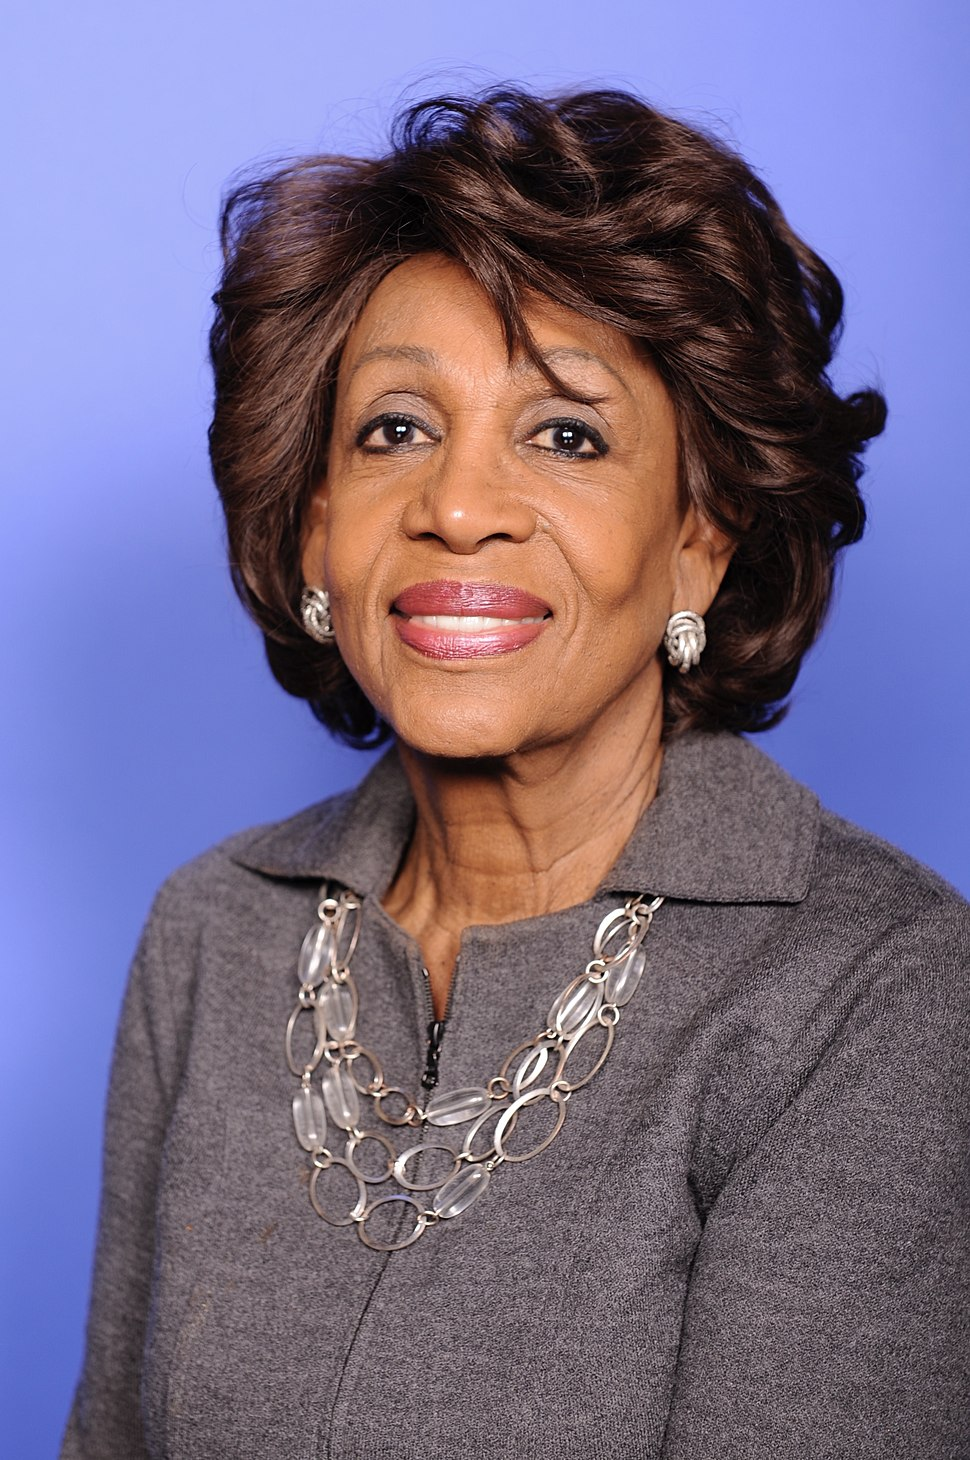 Congresswoman Waters official photo